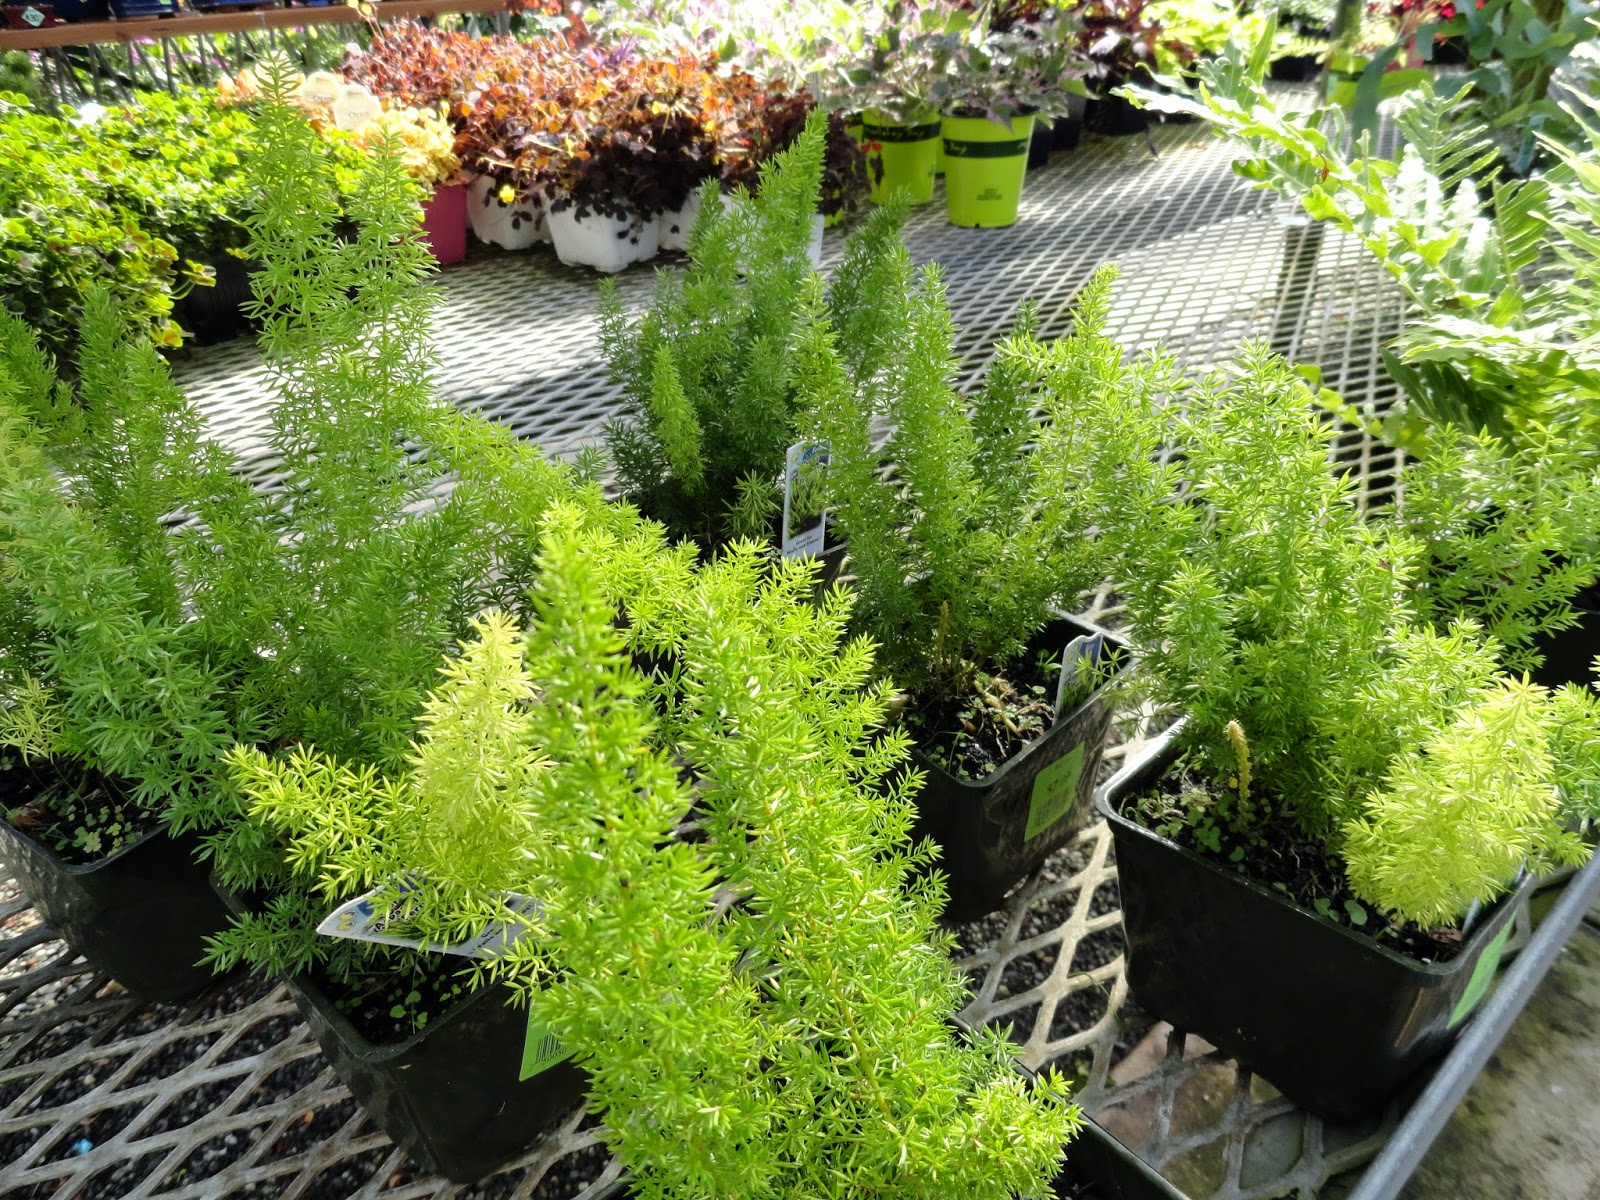 I Wish Saw 4 Asparagus Ferns Available In Portland Area Nurseries D Be More Willing To Experiment With A Few The Ground